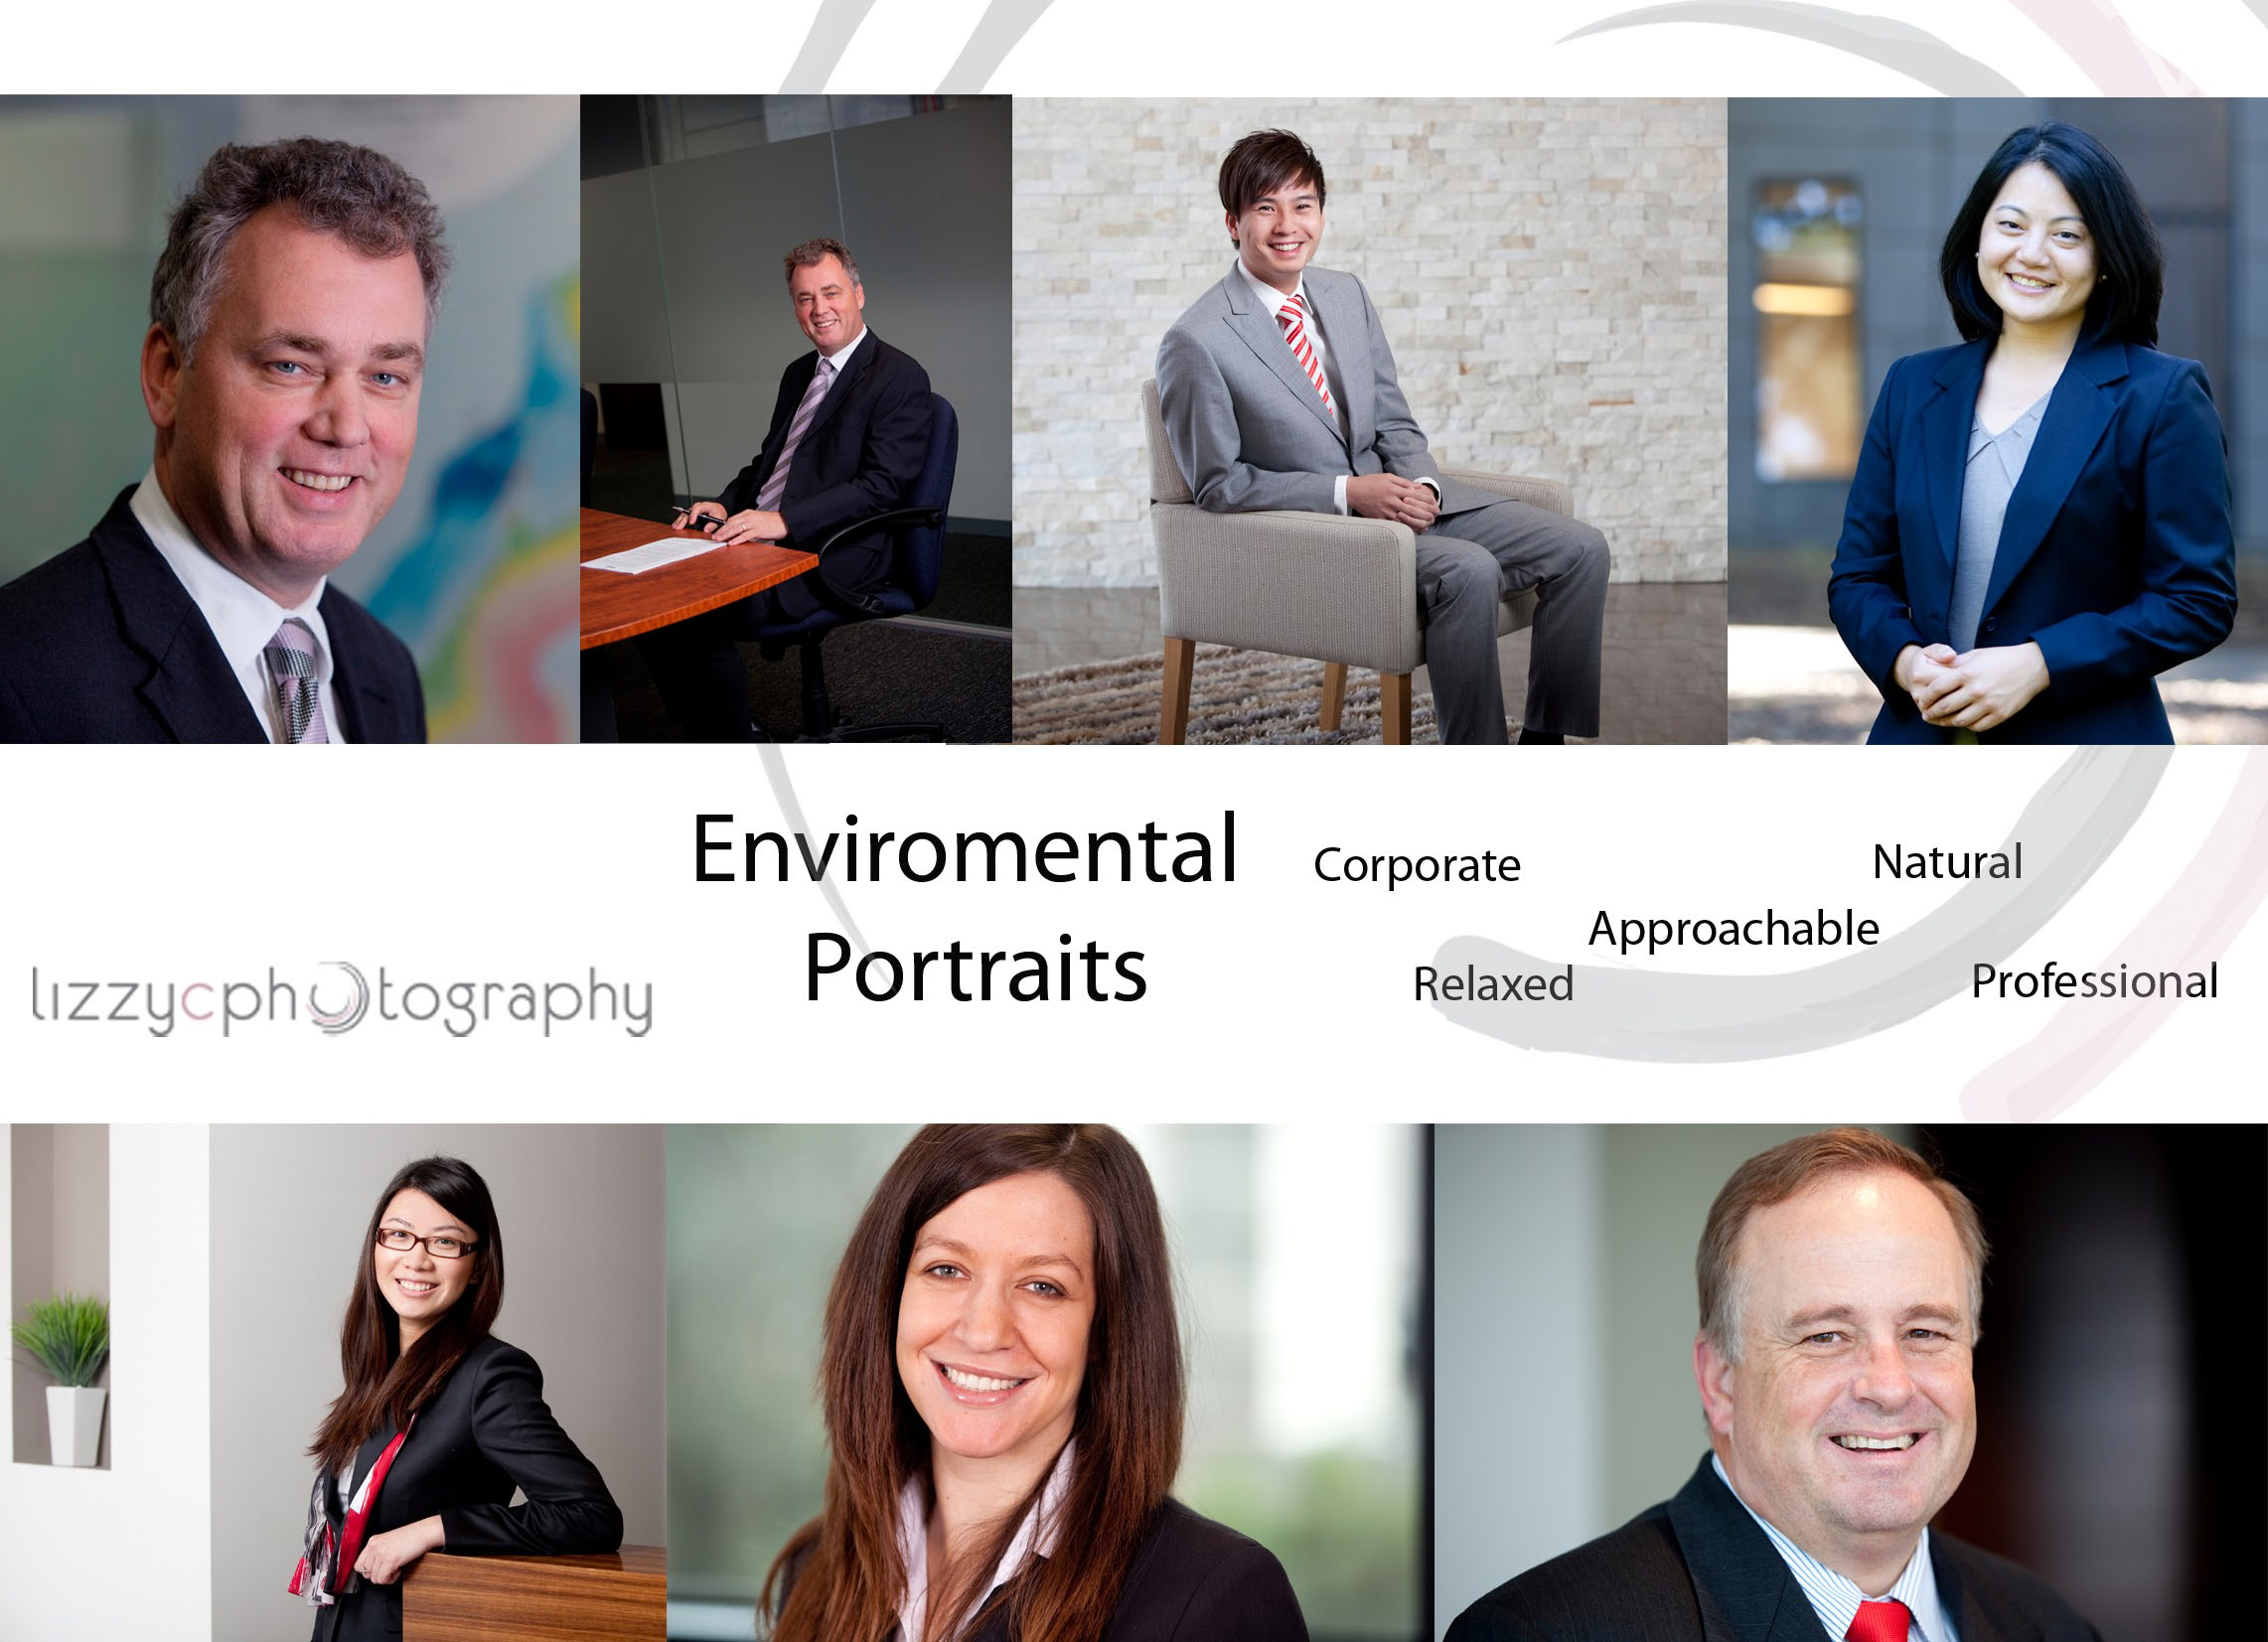 Different styles of enviromental portraits for professioanals